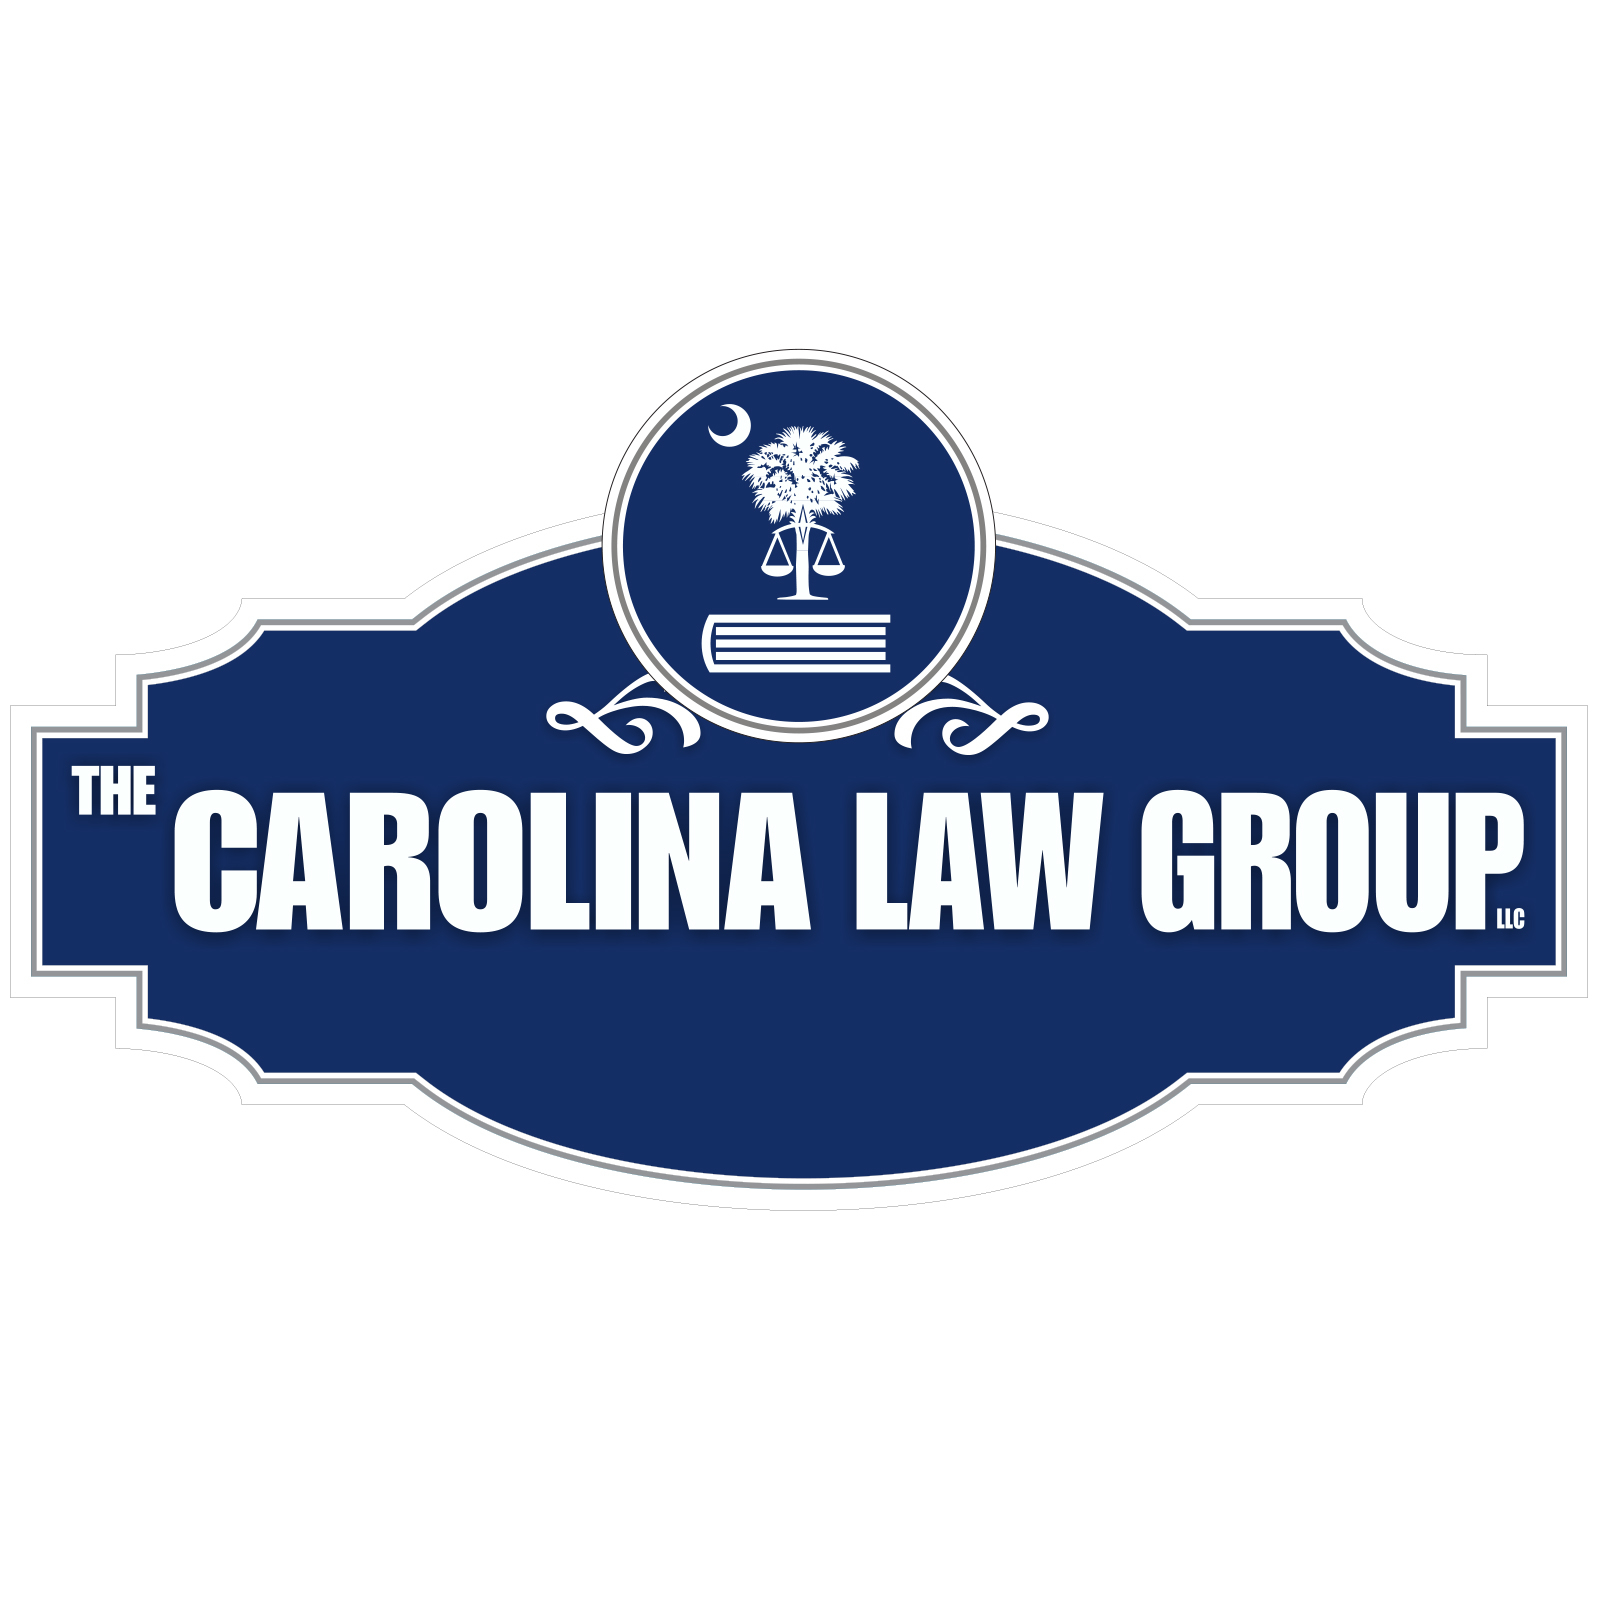 The Carolina Law Group - Greenville, SC - Attorneys